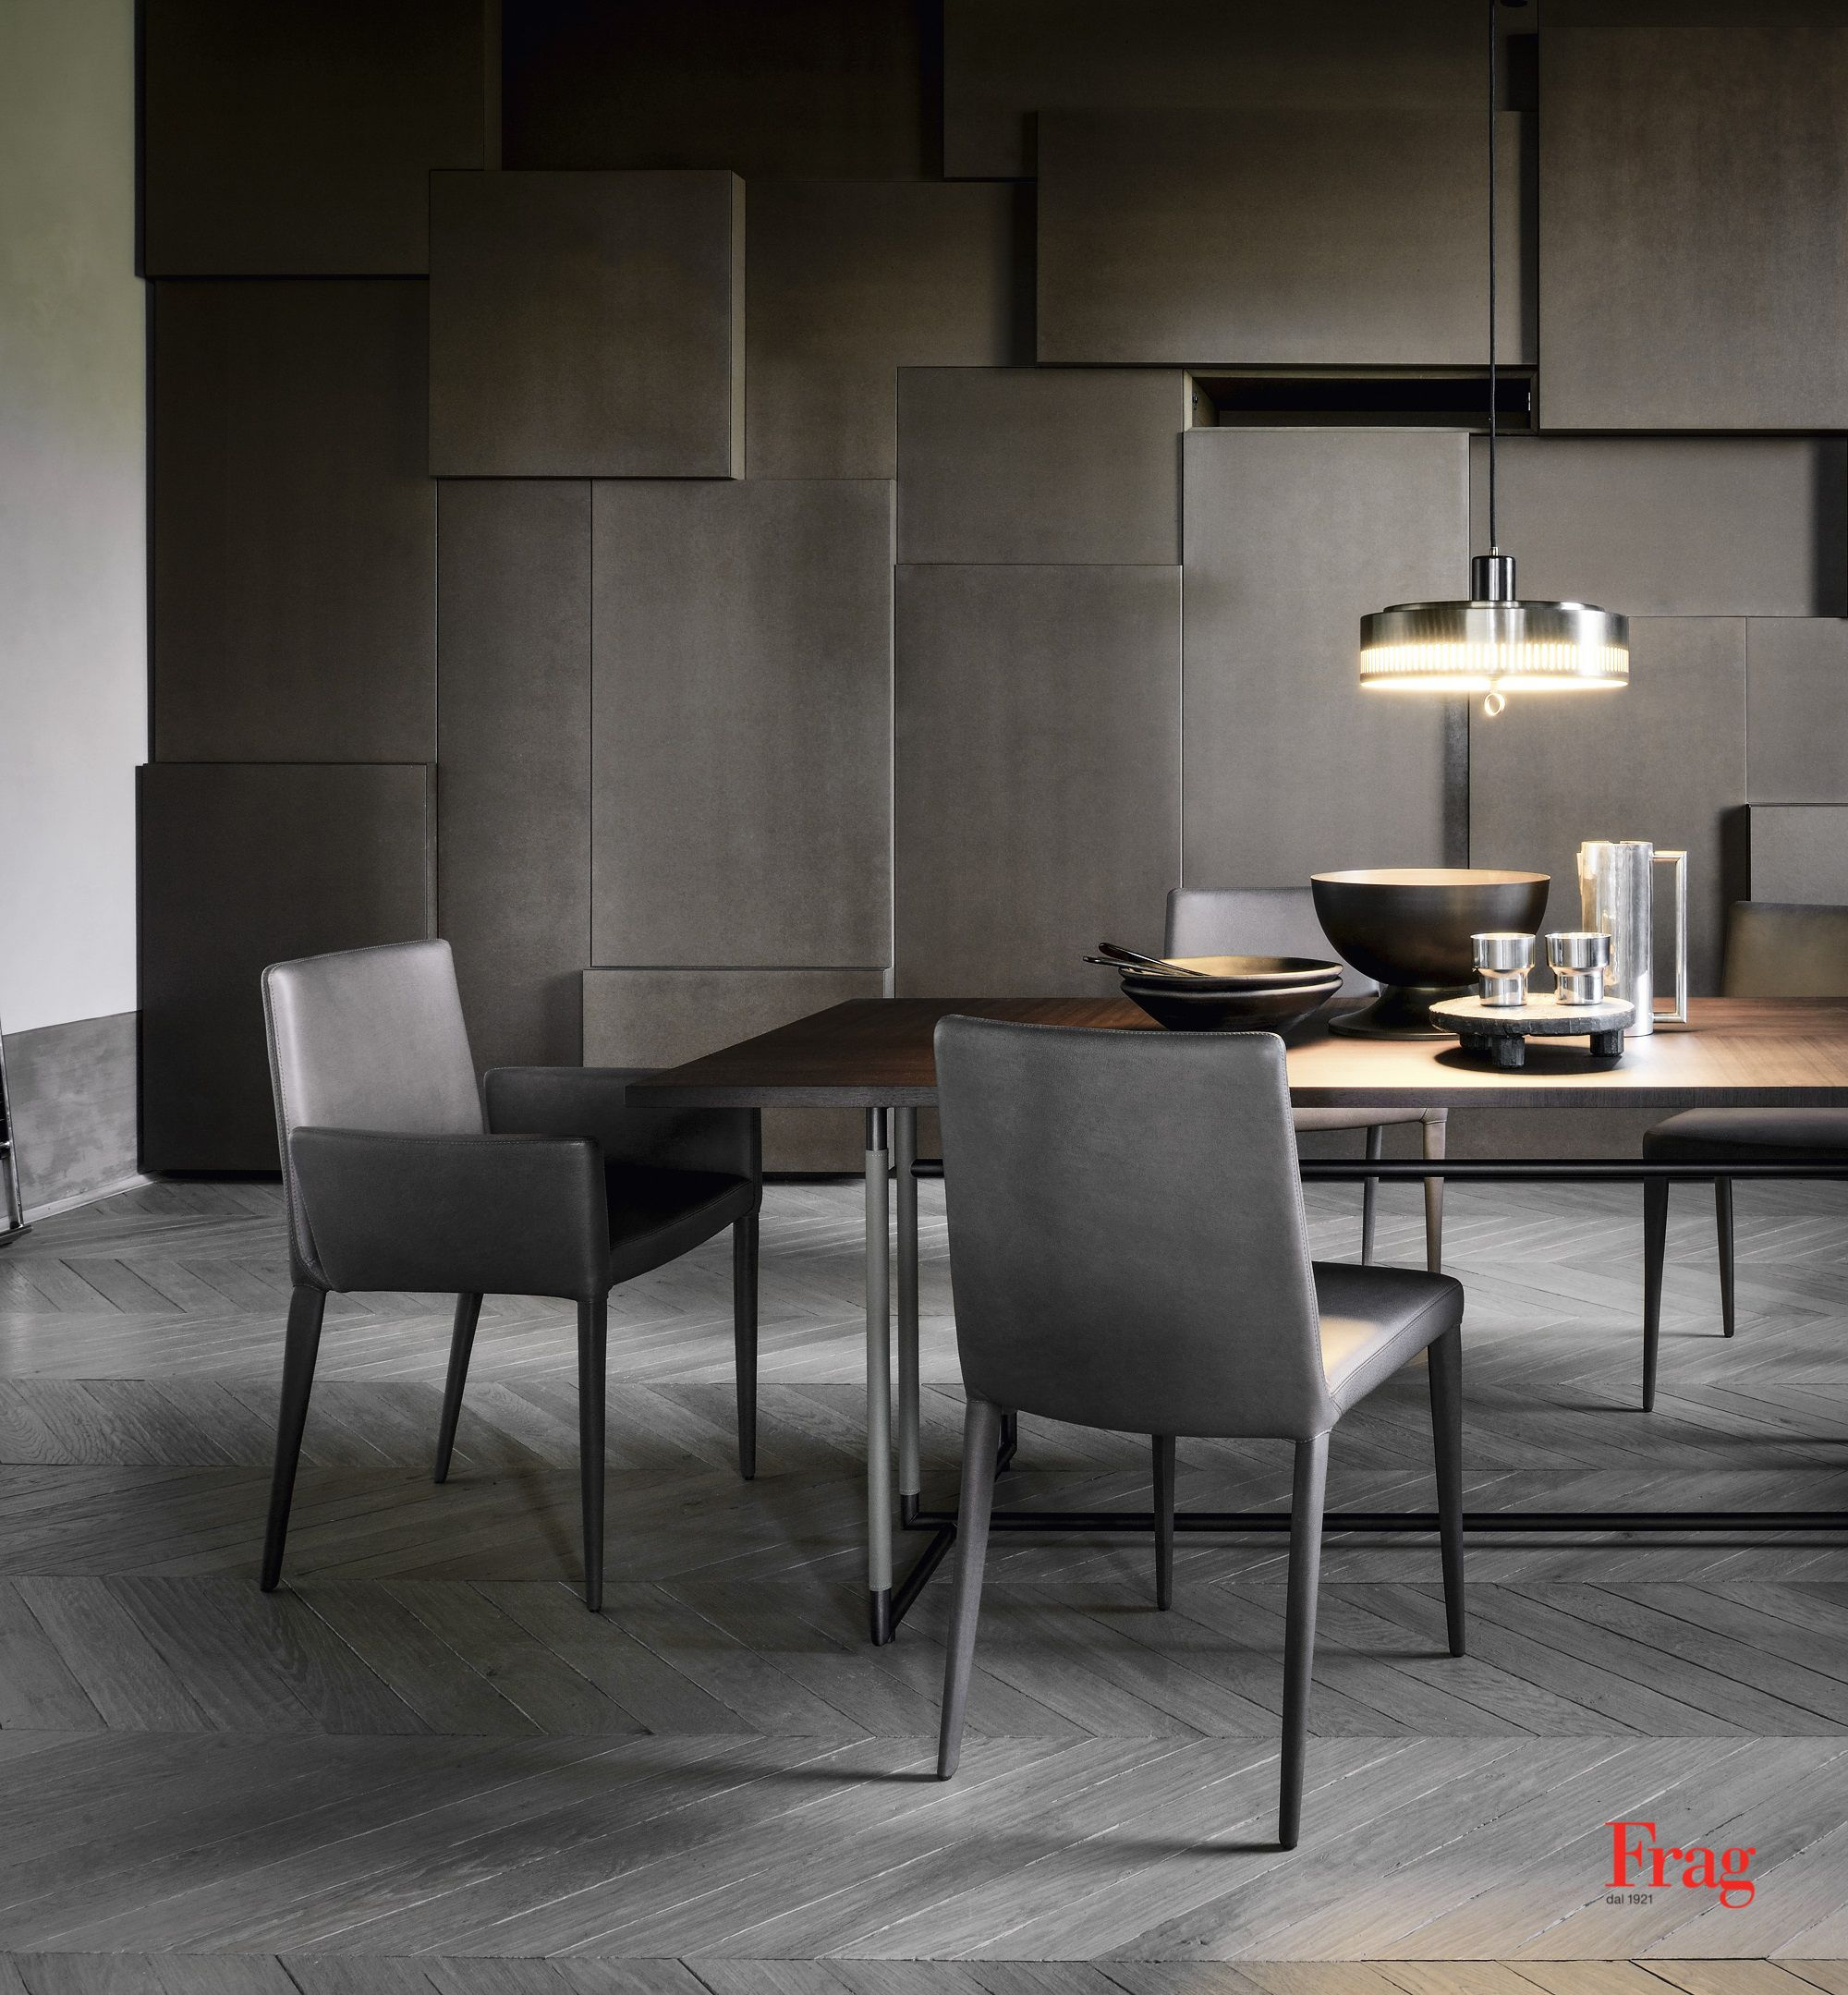 Frag Bella In 2020 Furniture Comfortable Dining Chairs Contemporary Furniture Design